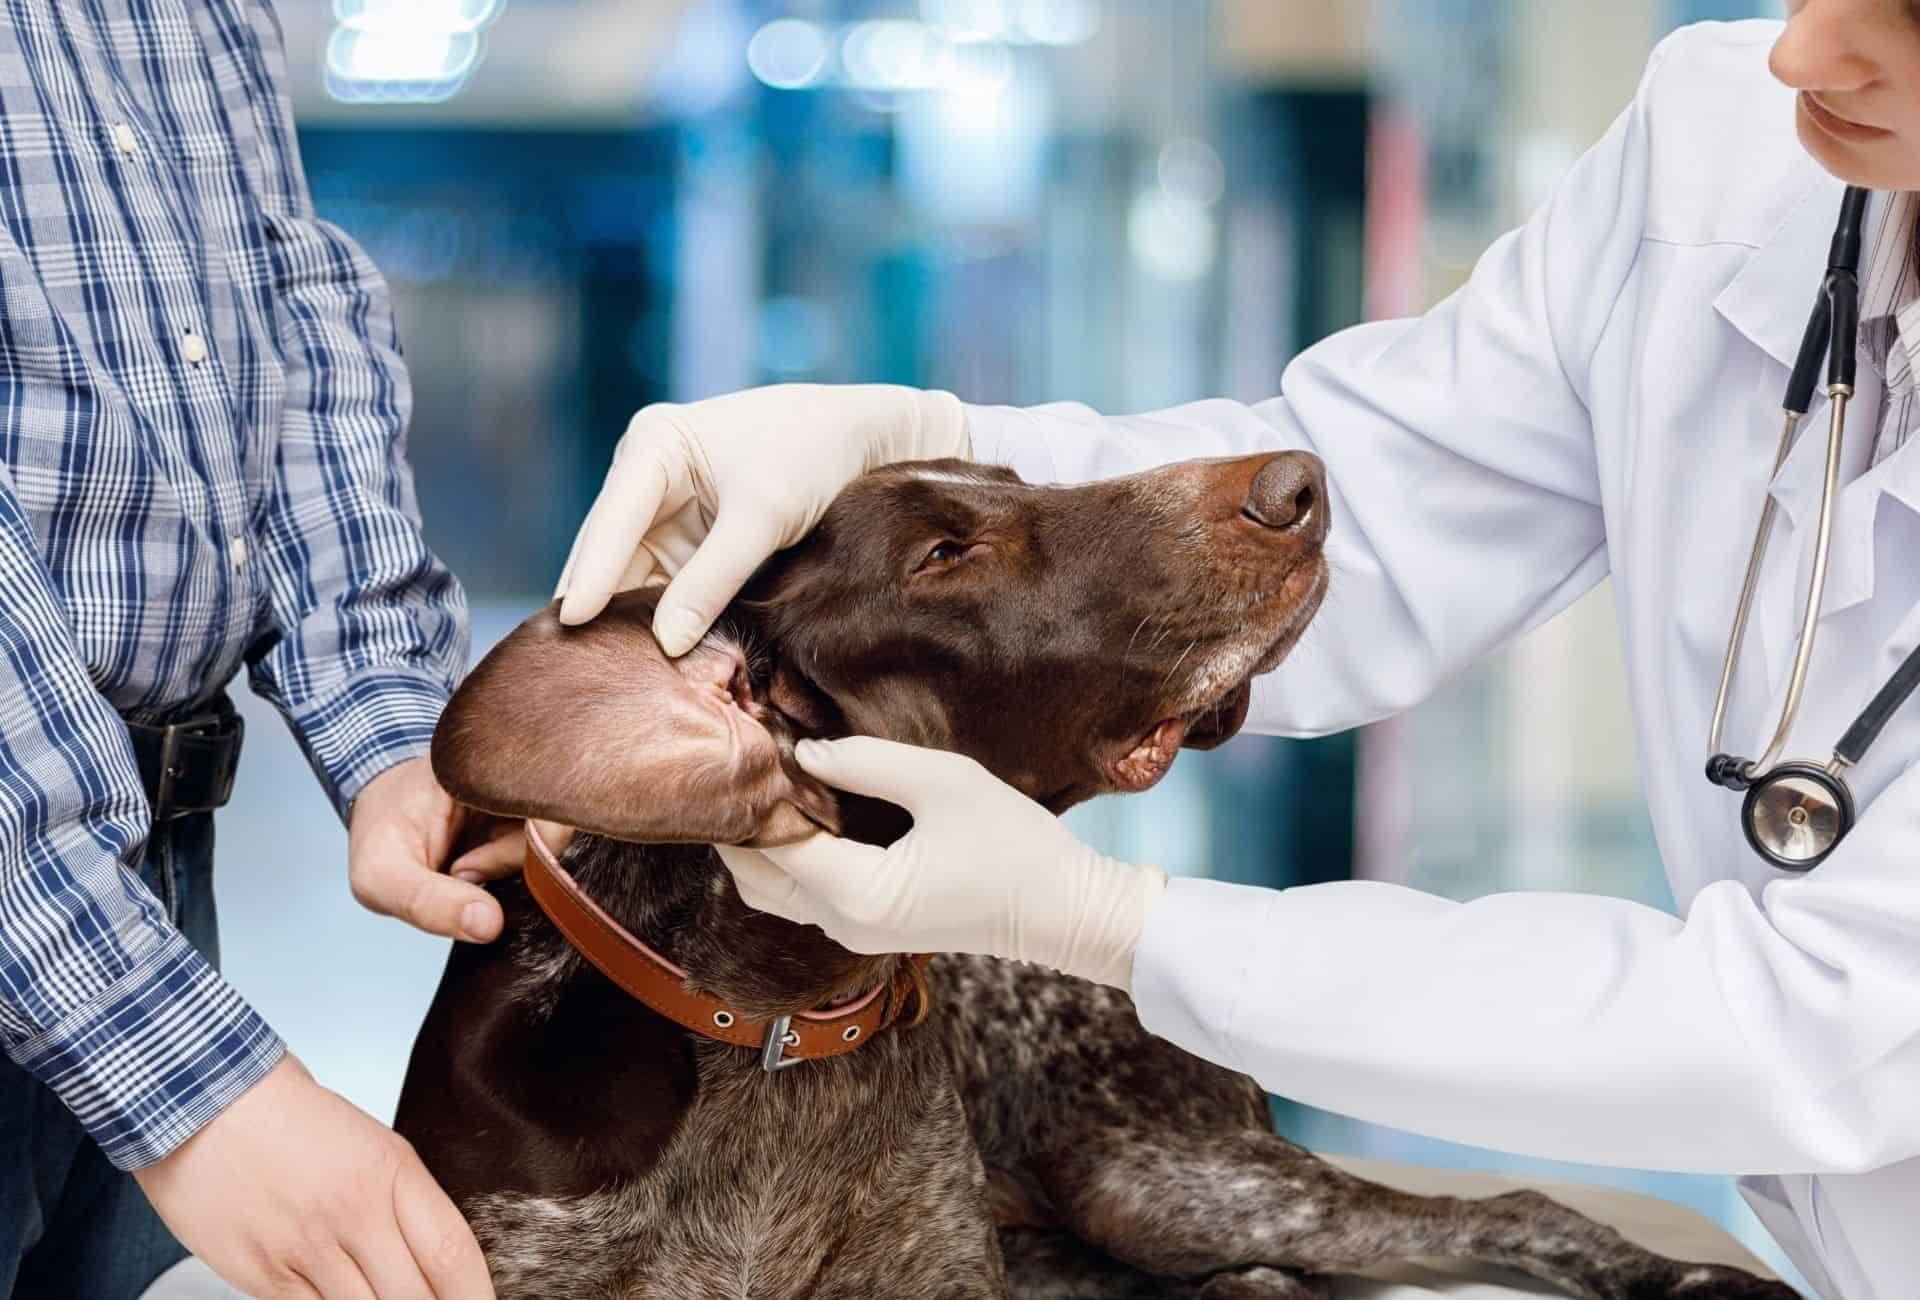 Ear infections or injuries can cause dogs to walk in circles and be disoriented.